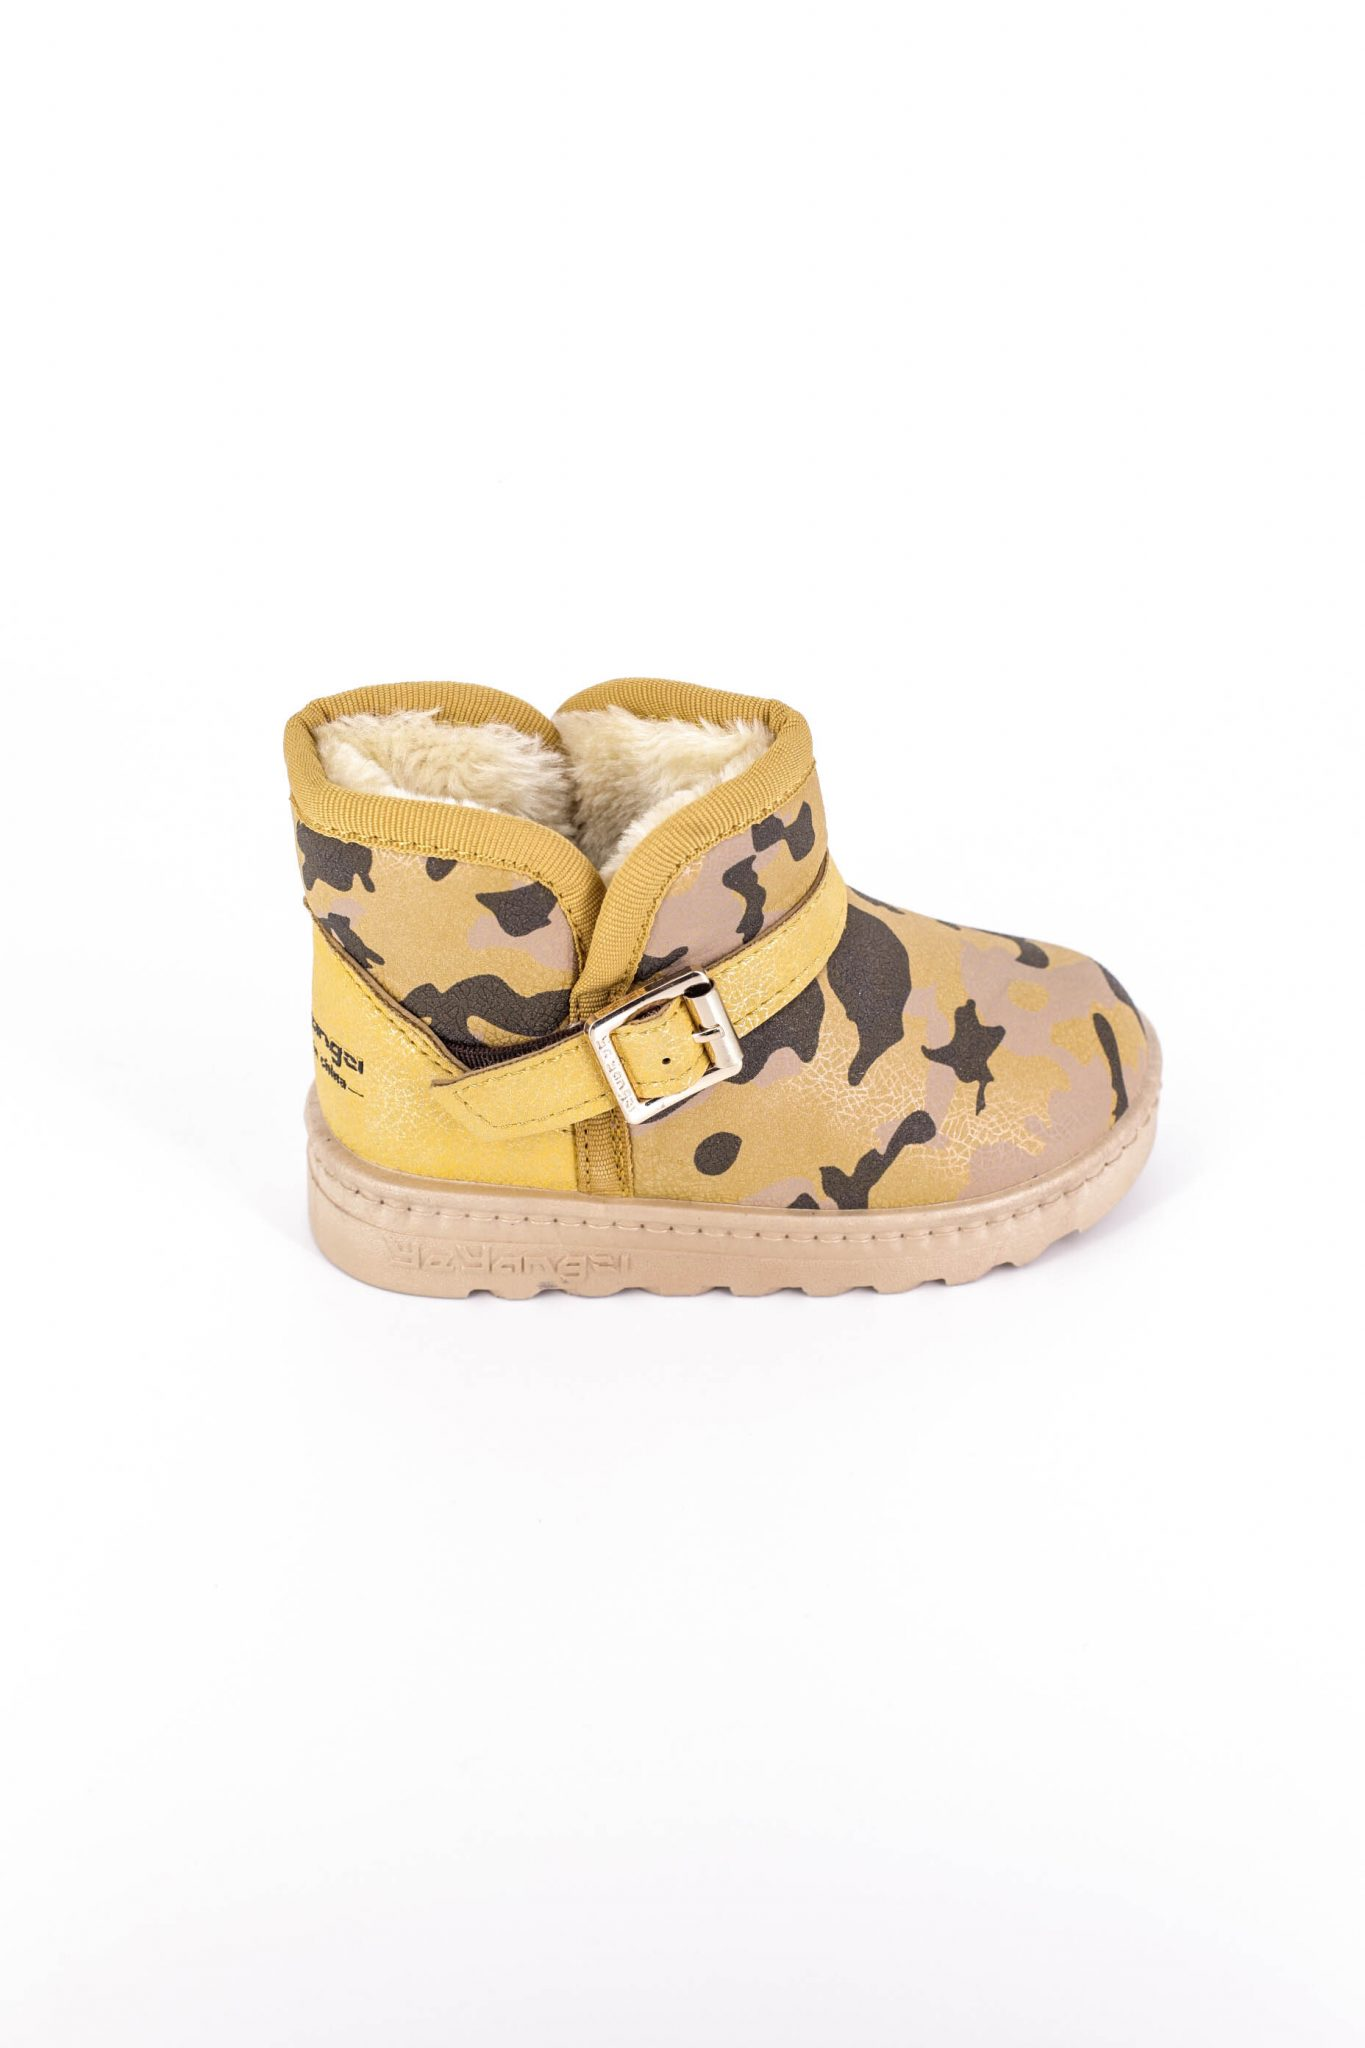 Cizme Copii Tip UGG Army Yellow